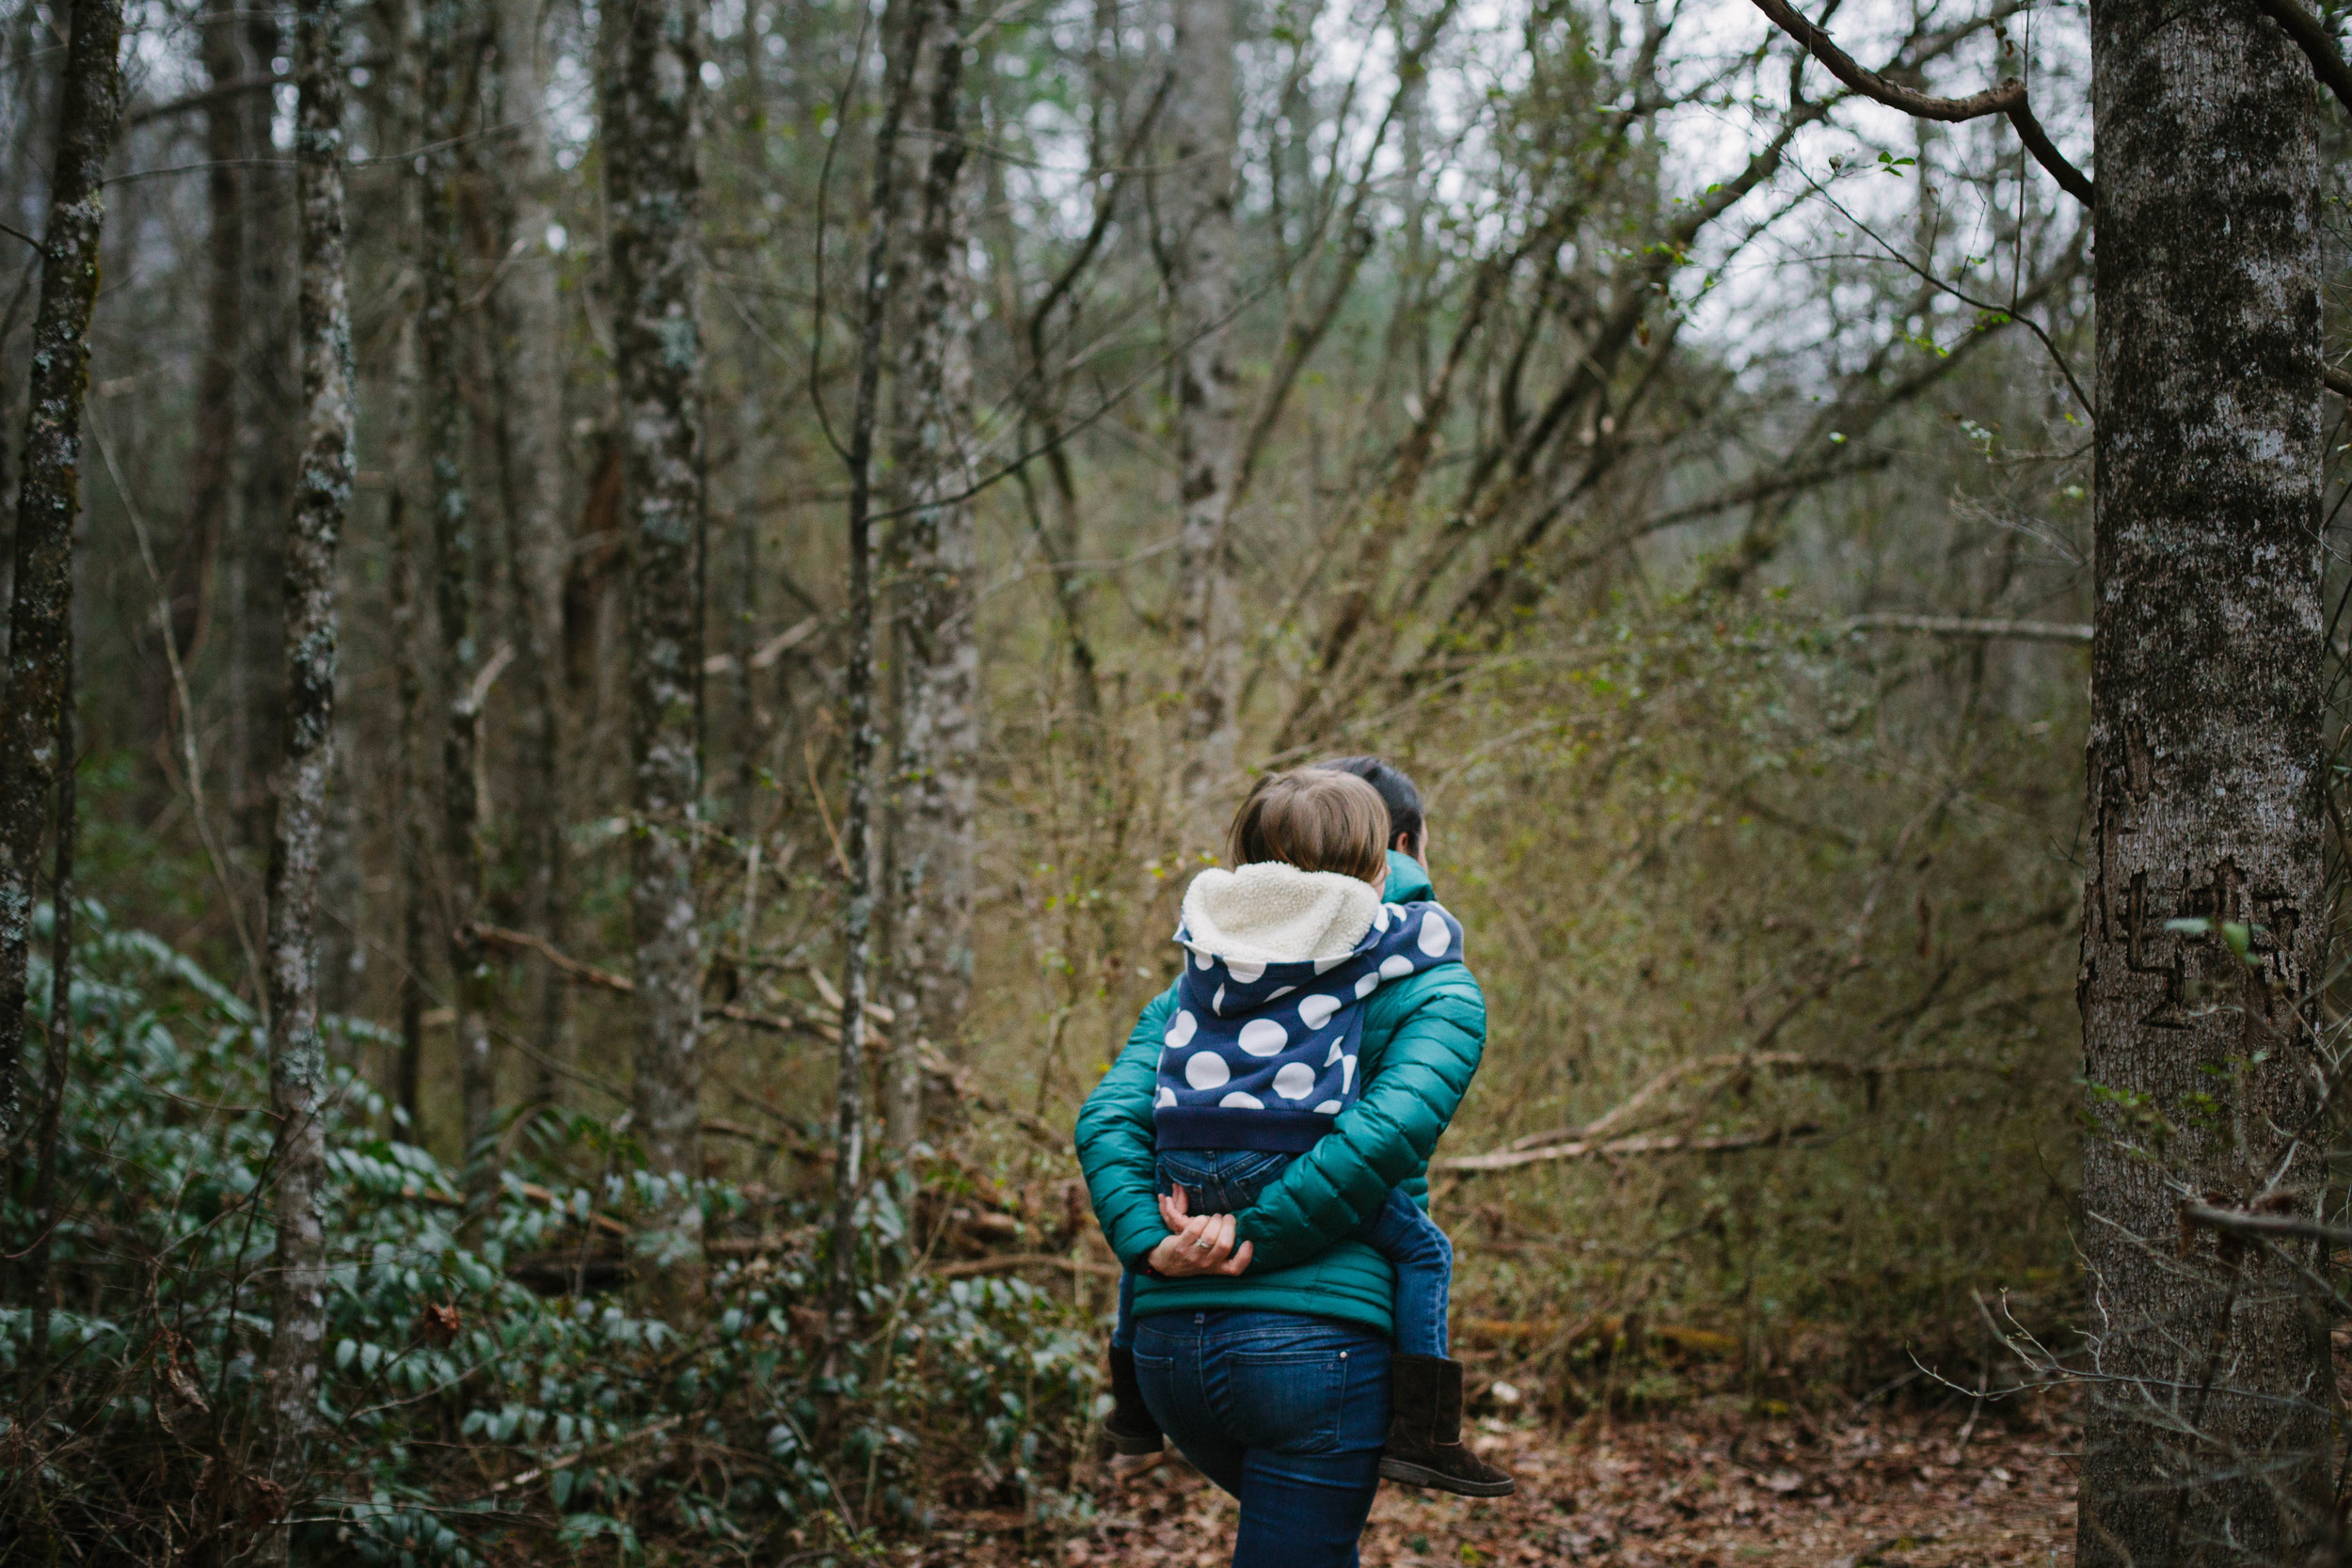 Image of woman carrying child on her back through a forest